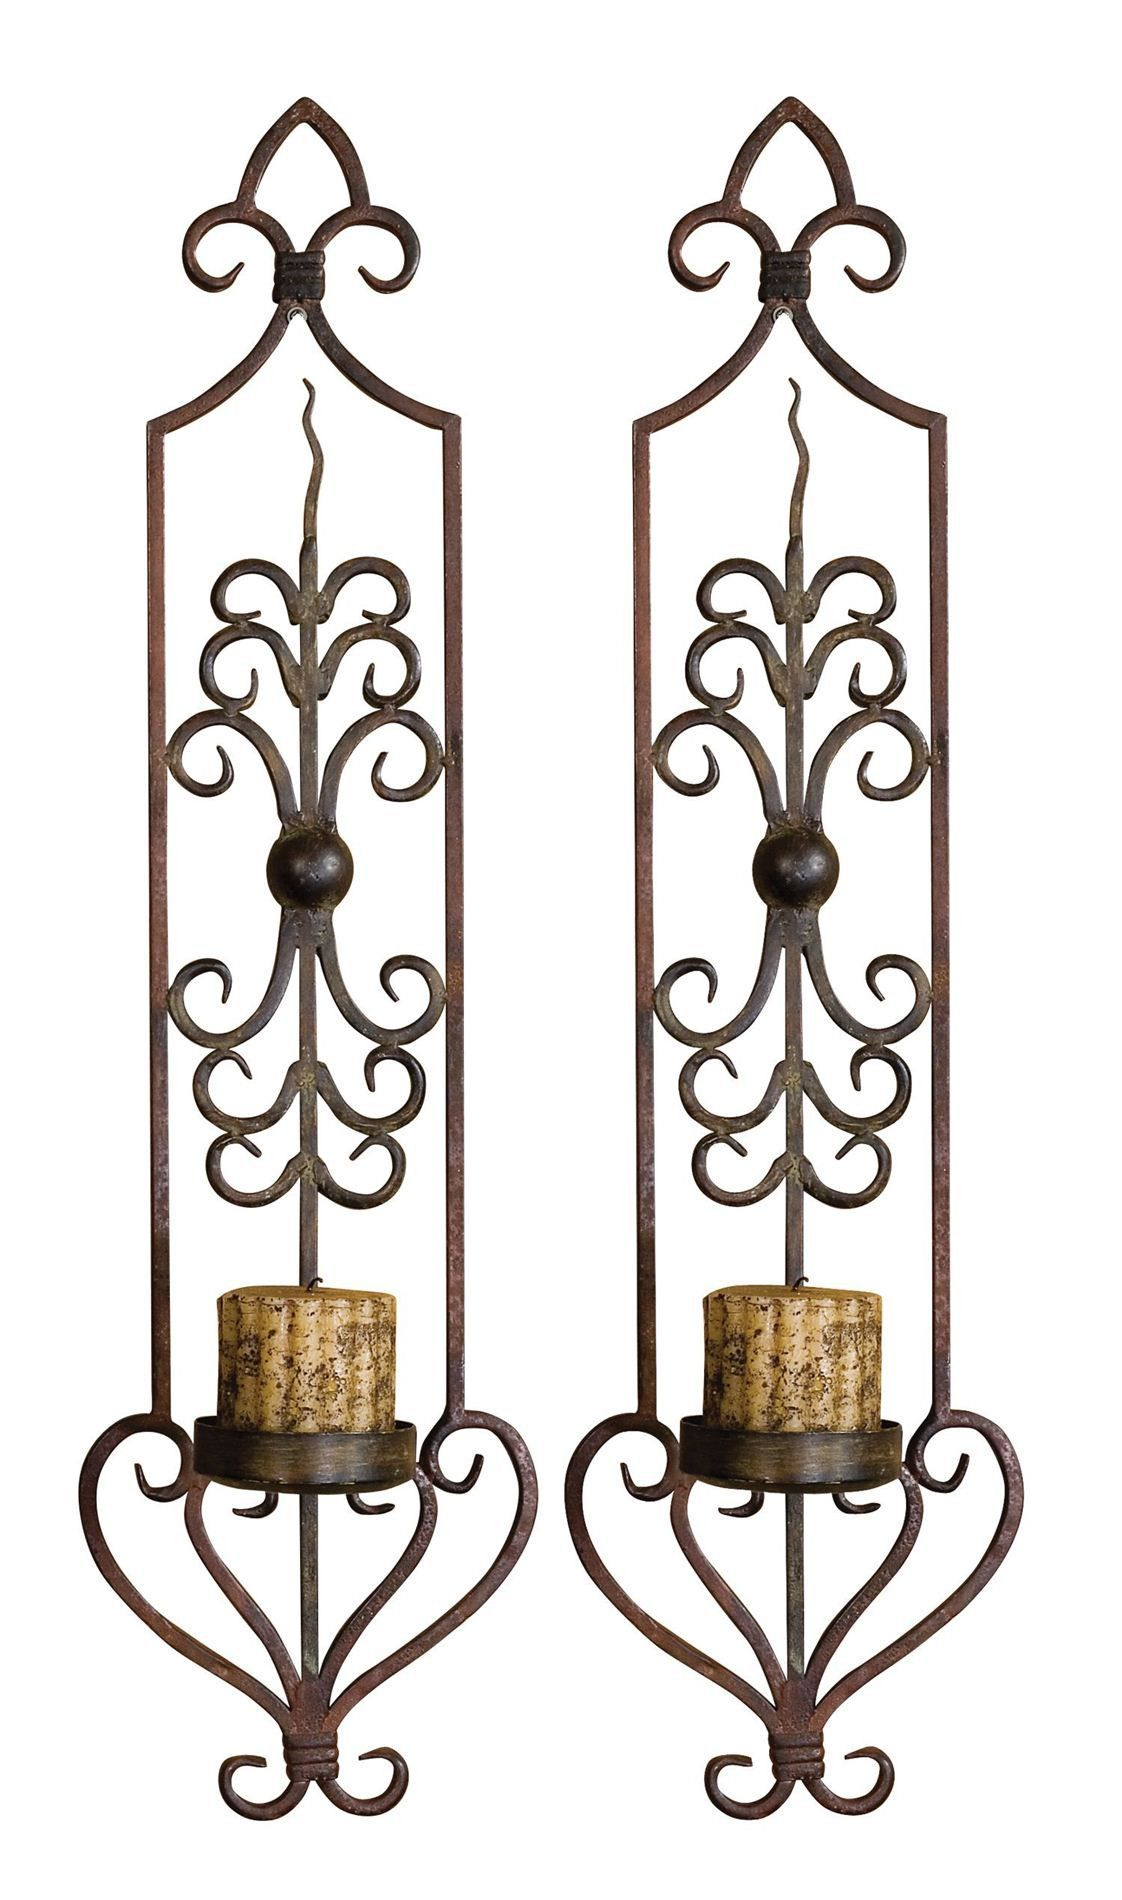 Privas Metal Candle Wall Sconces, Set of 2 by Uttermost